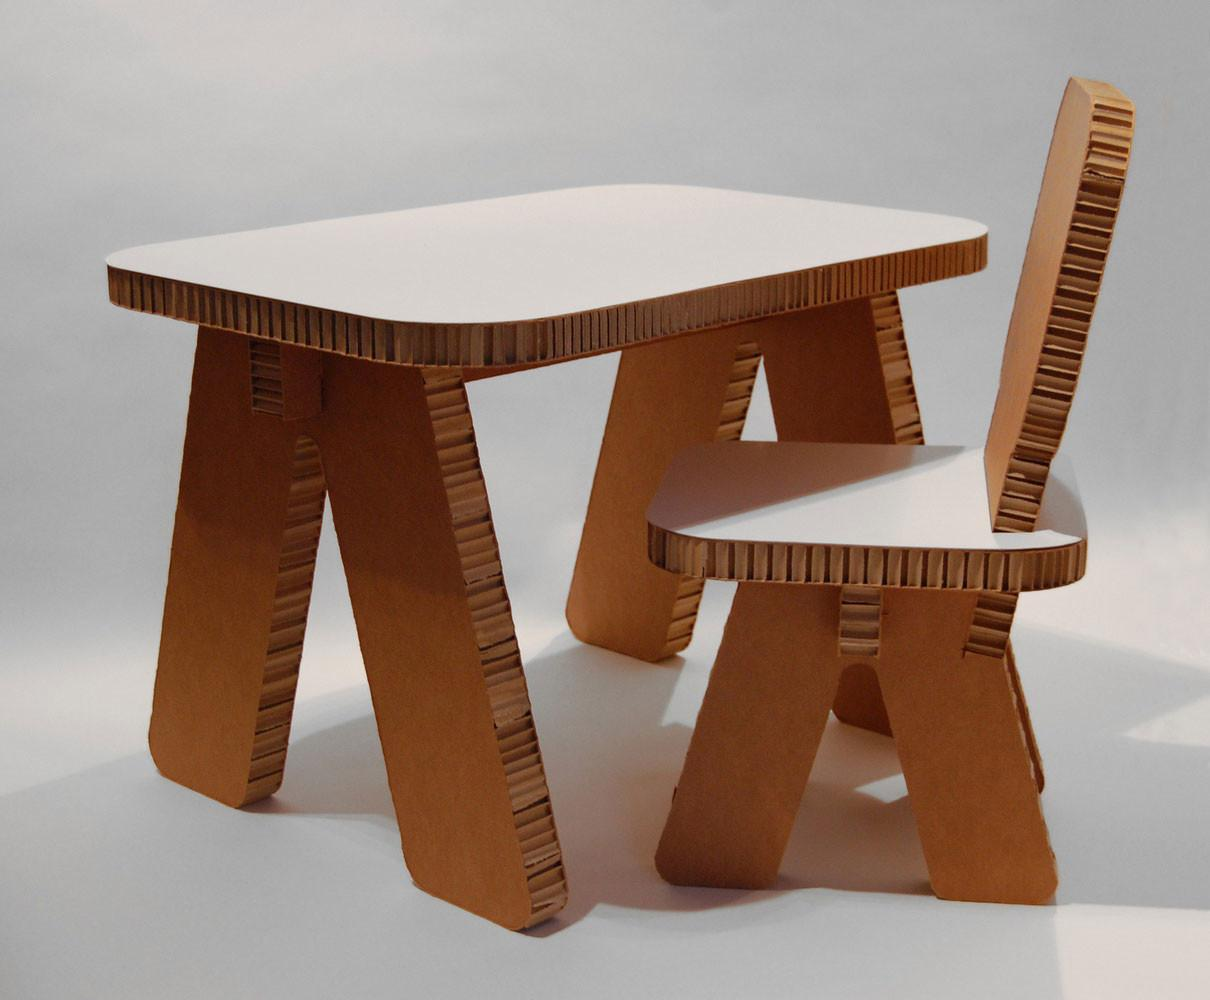 Cardboard Furniture Design Ideas Home Architecture